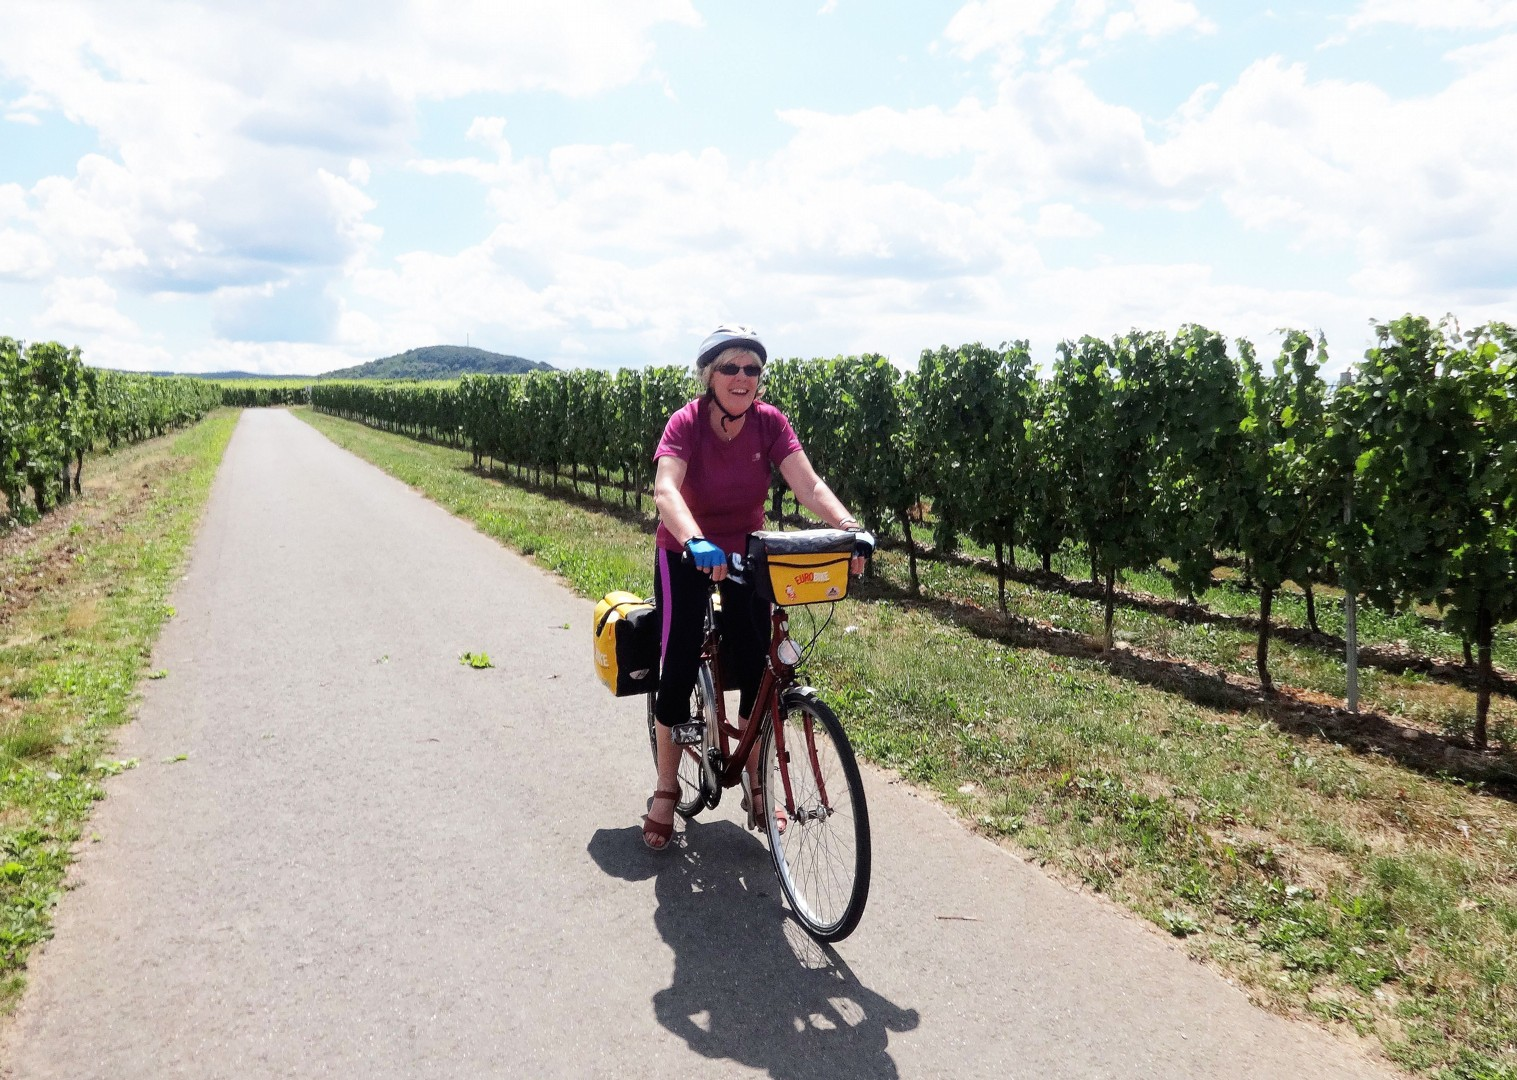 leisure-cycling-holiday-in-germany-moselle-valley-eltz-castle.jpg - Germany - Moselle Valley - Self-Guided Leisure Cycling Holiday - Leisure Cycling